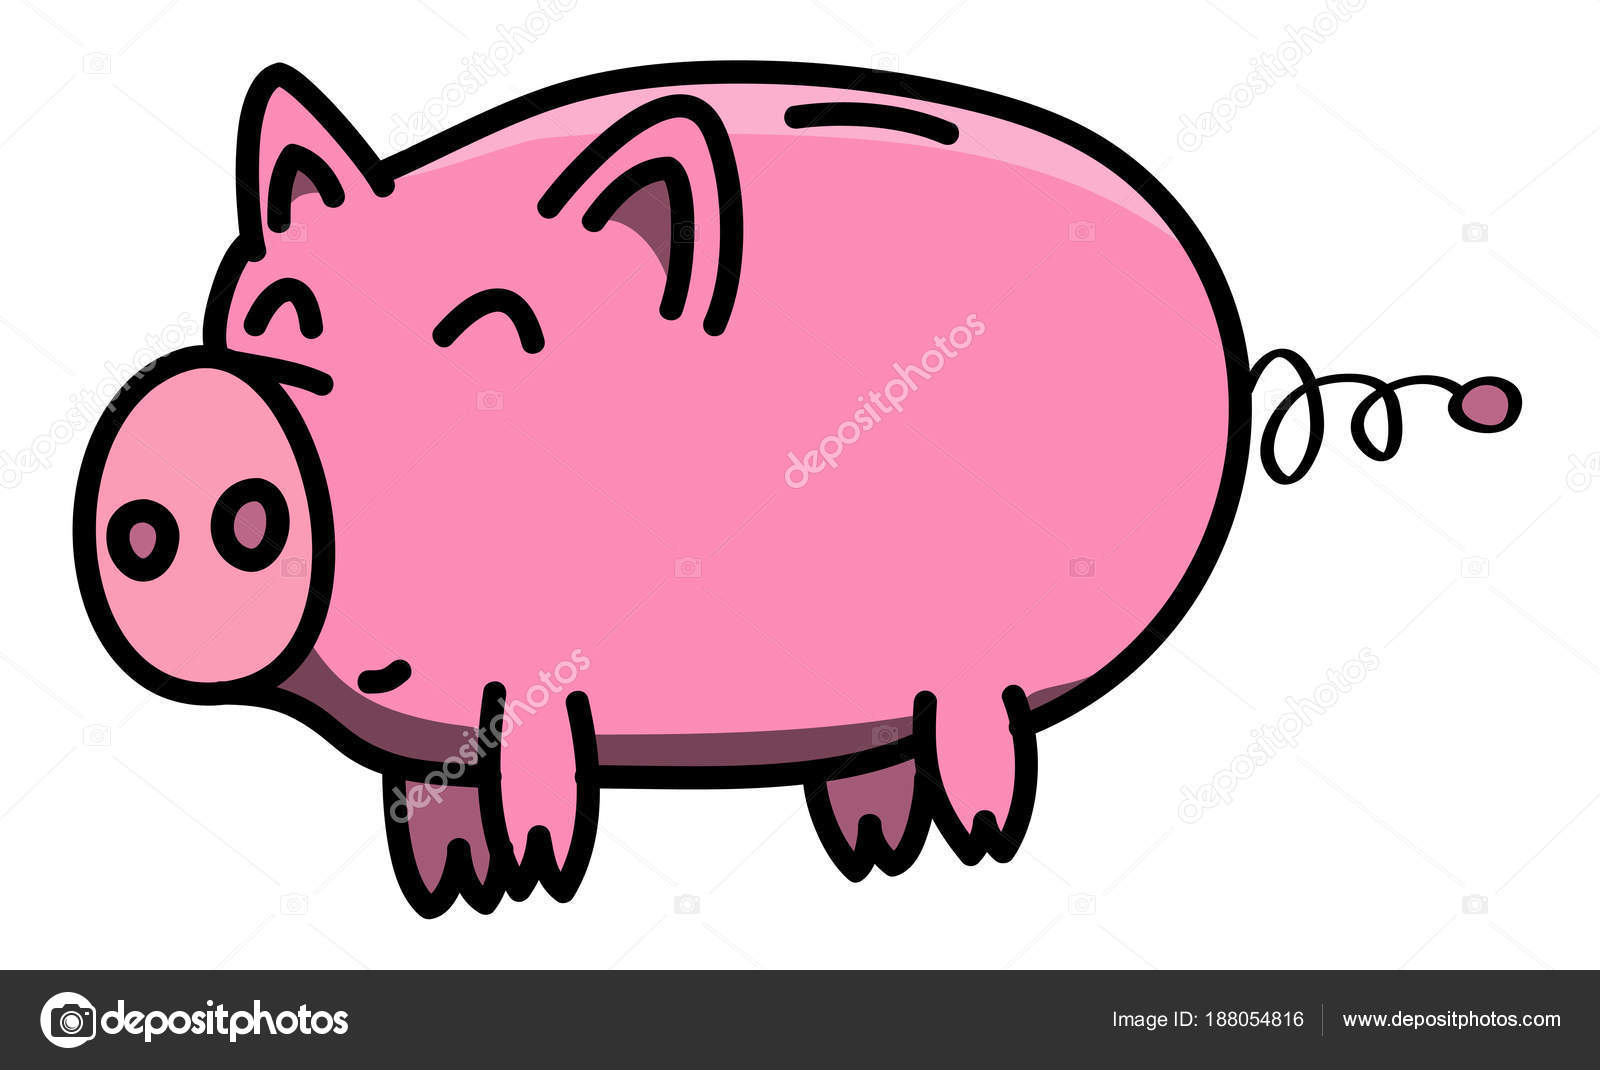 Clean And Shiny >> Hand Drawn Pink Clean Shiny And Happy Fat Piggybank Animal Outline